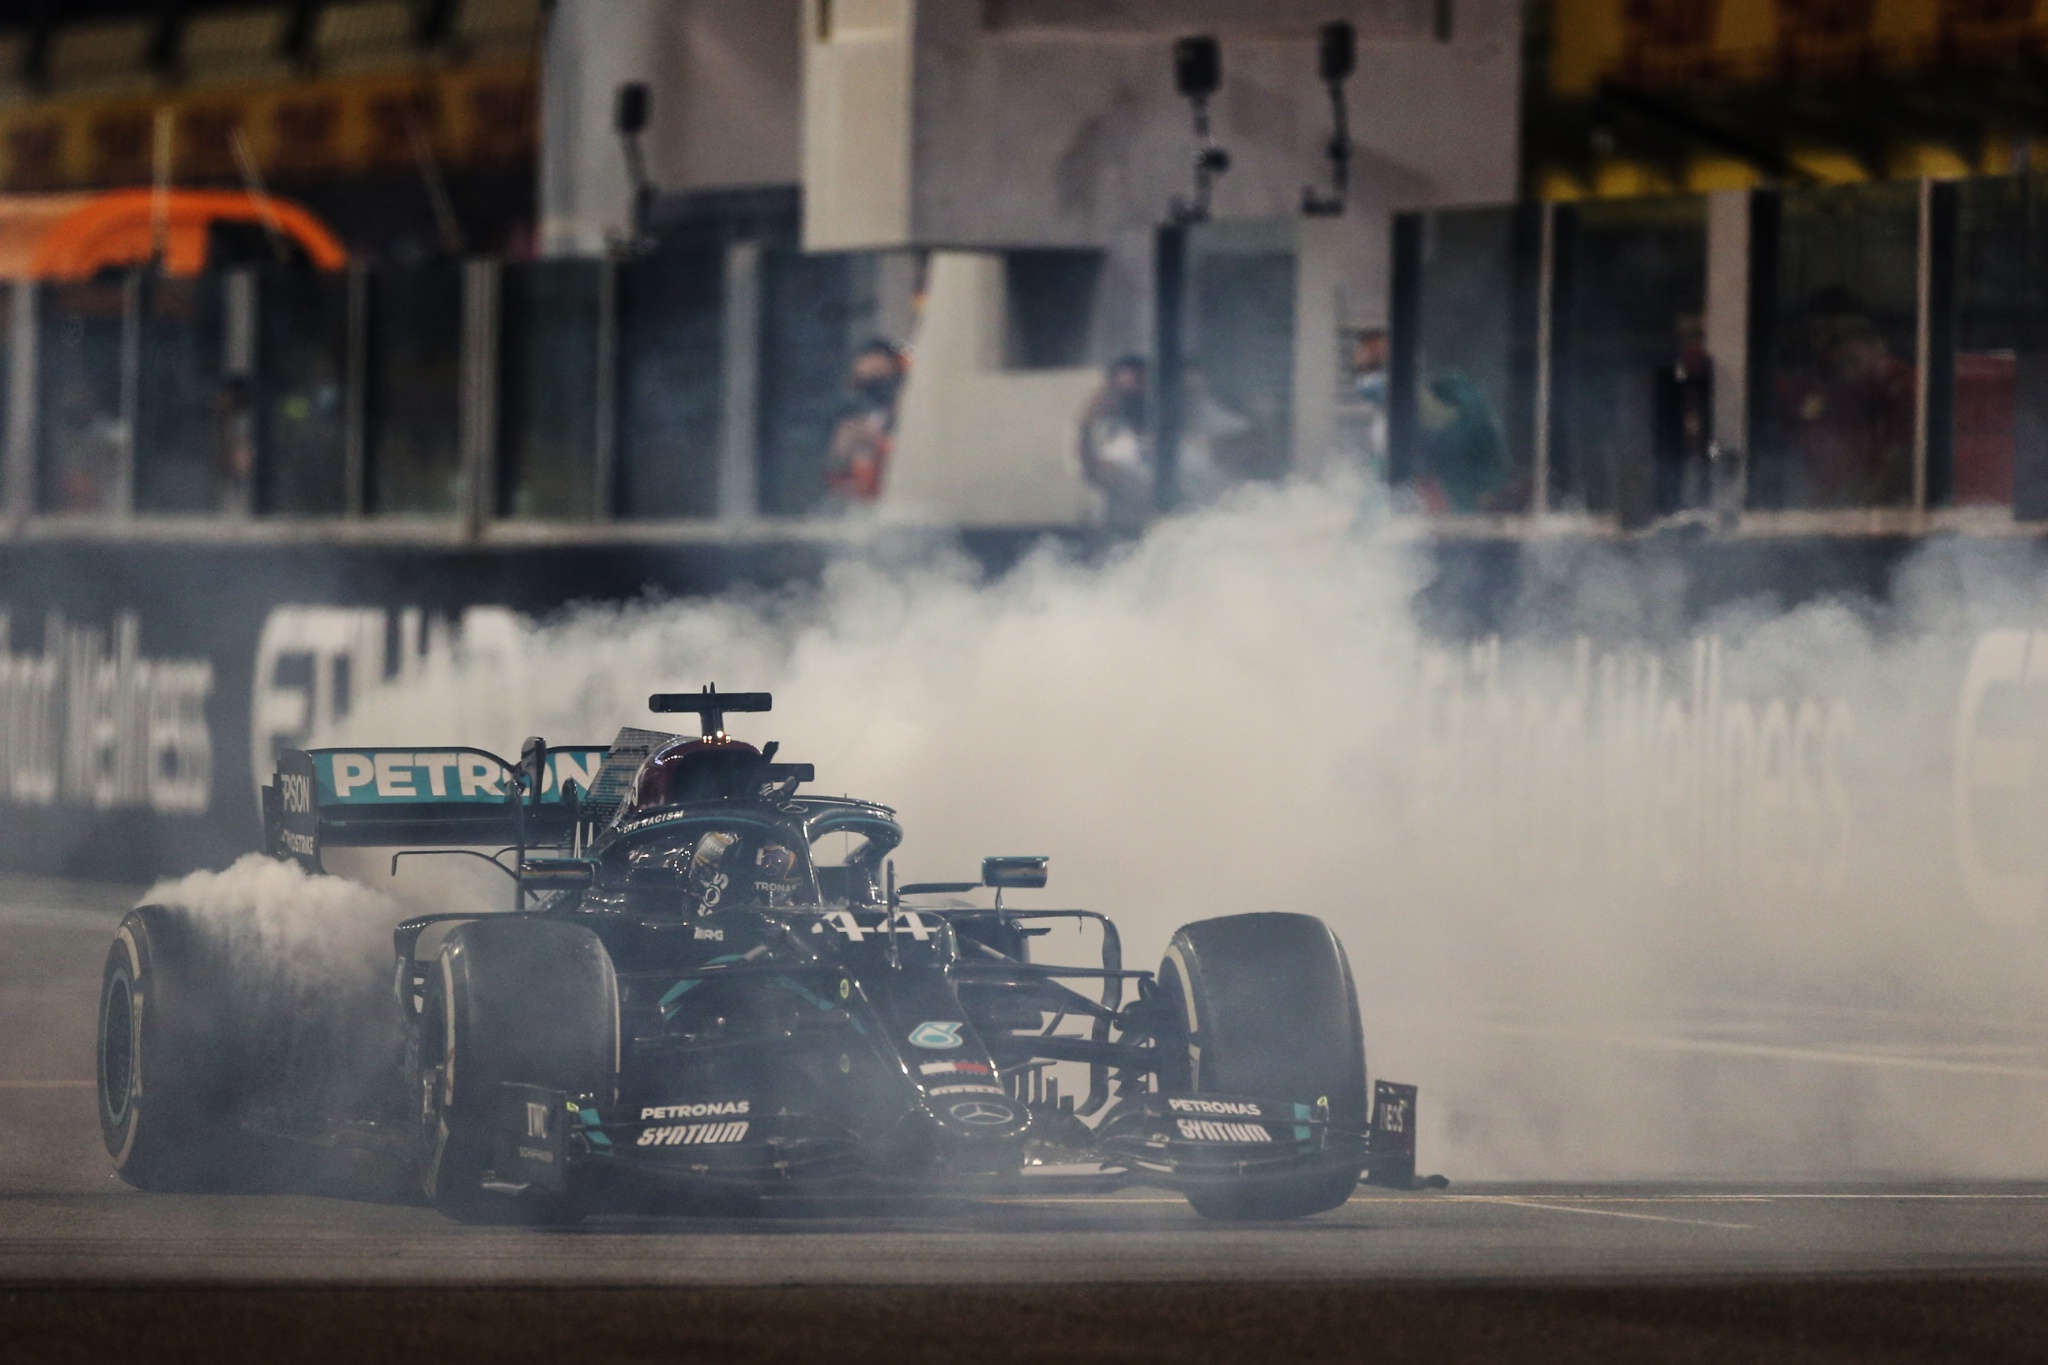 Lewis Hamilton (GBR) Mercedes AMG F1 W11 - doughnuts at the end of the race.